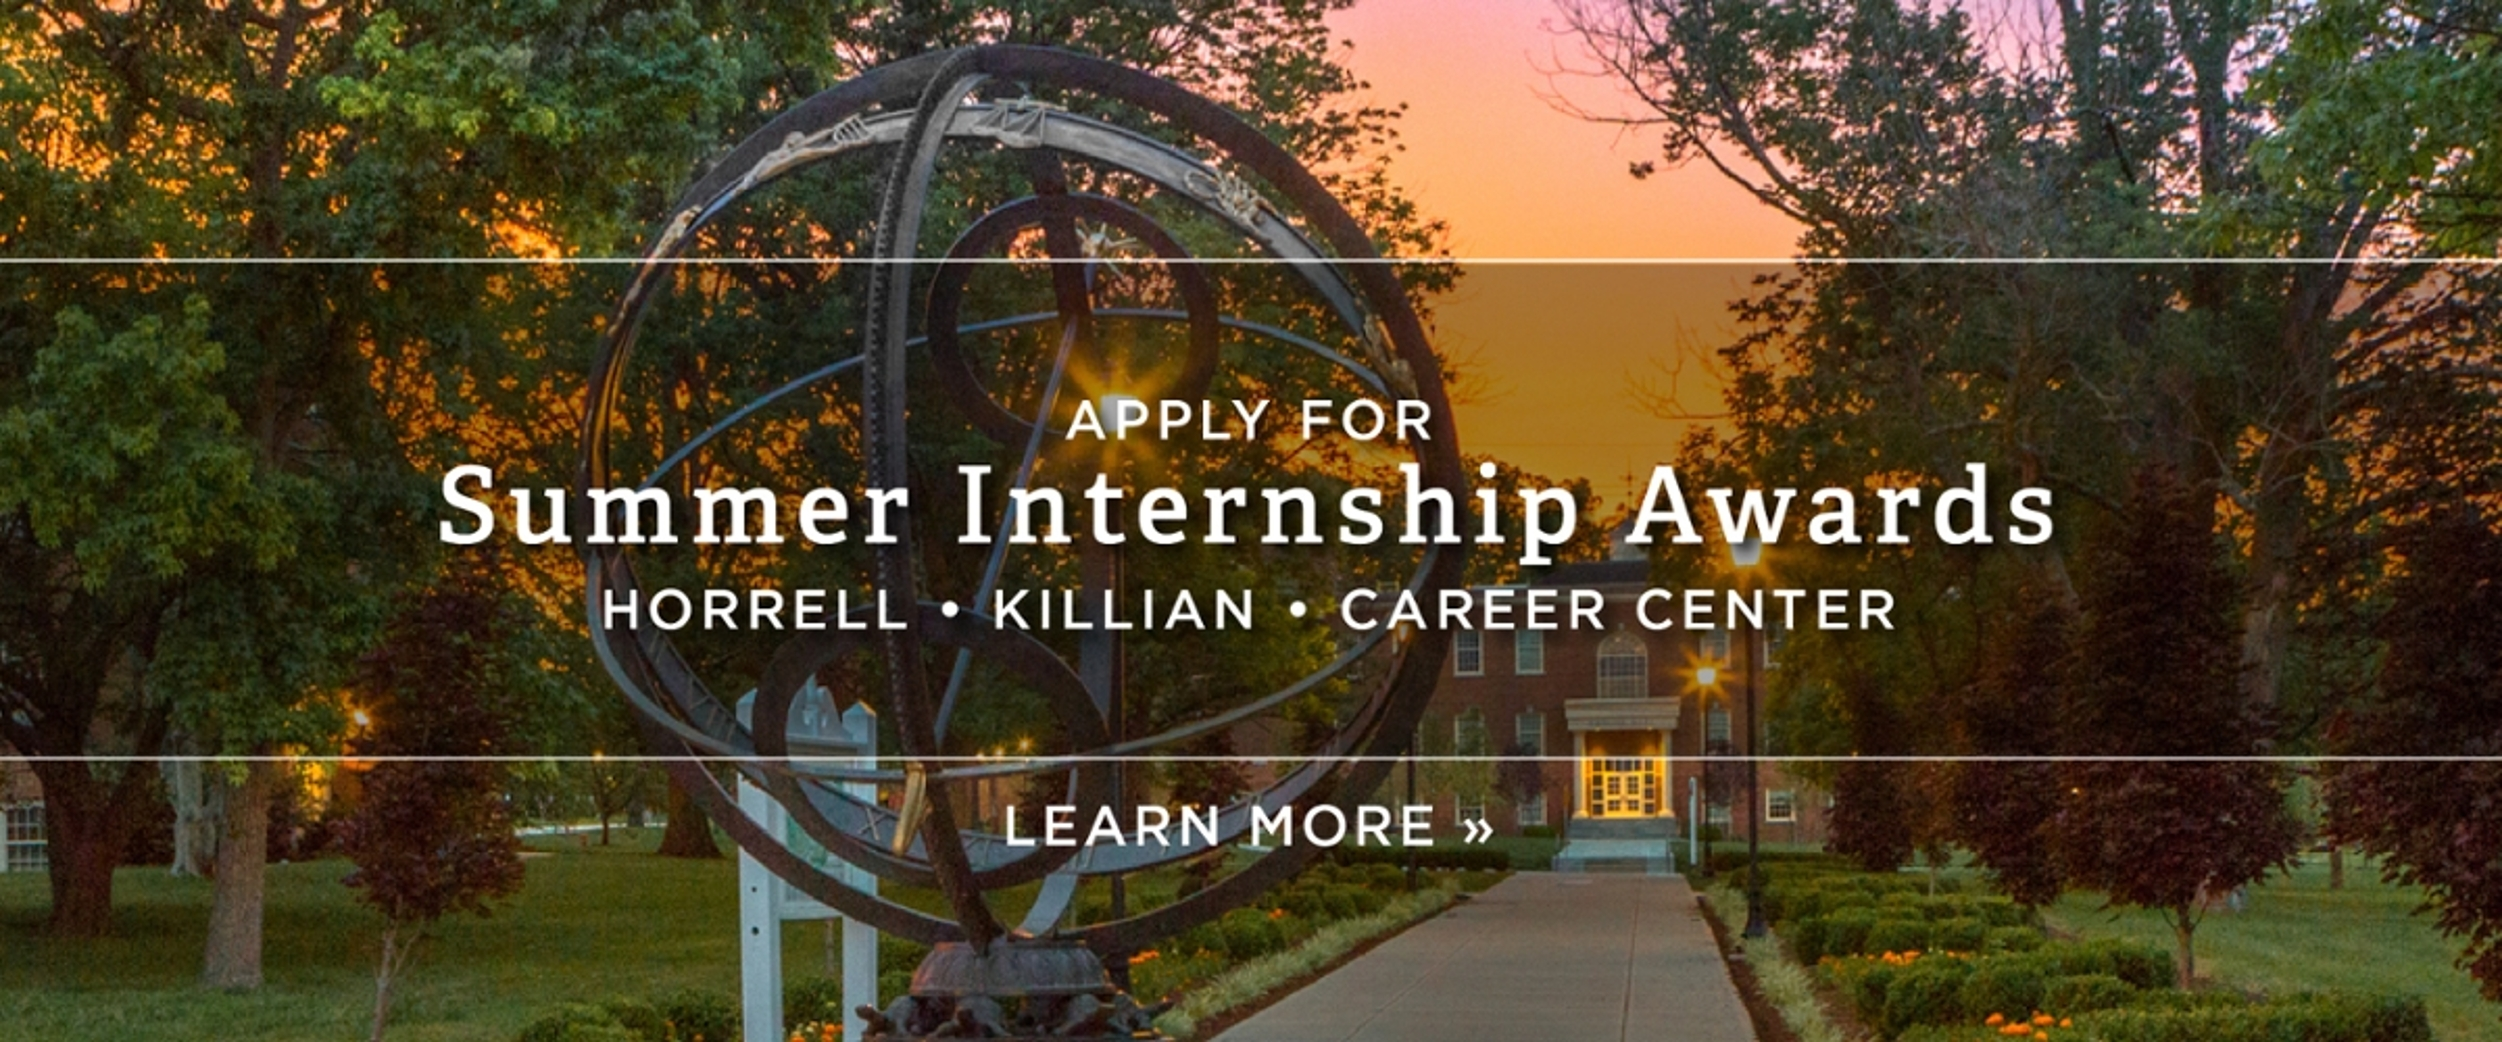 Apply for Summer Internship Awards